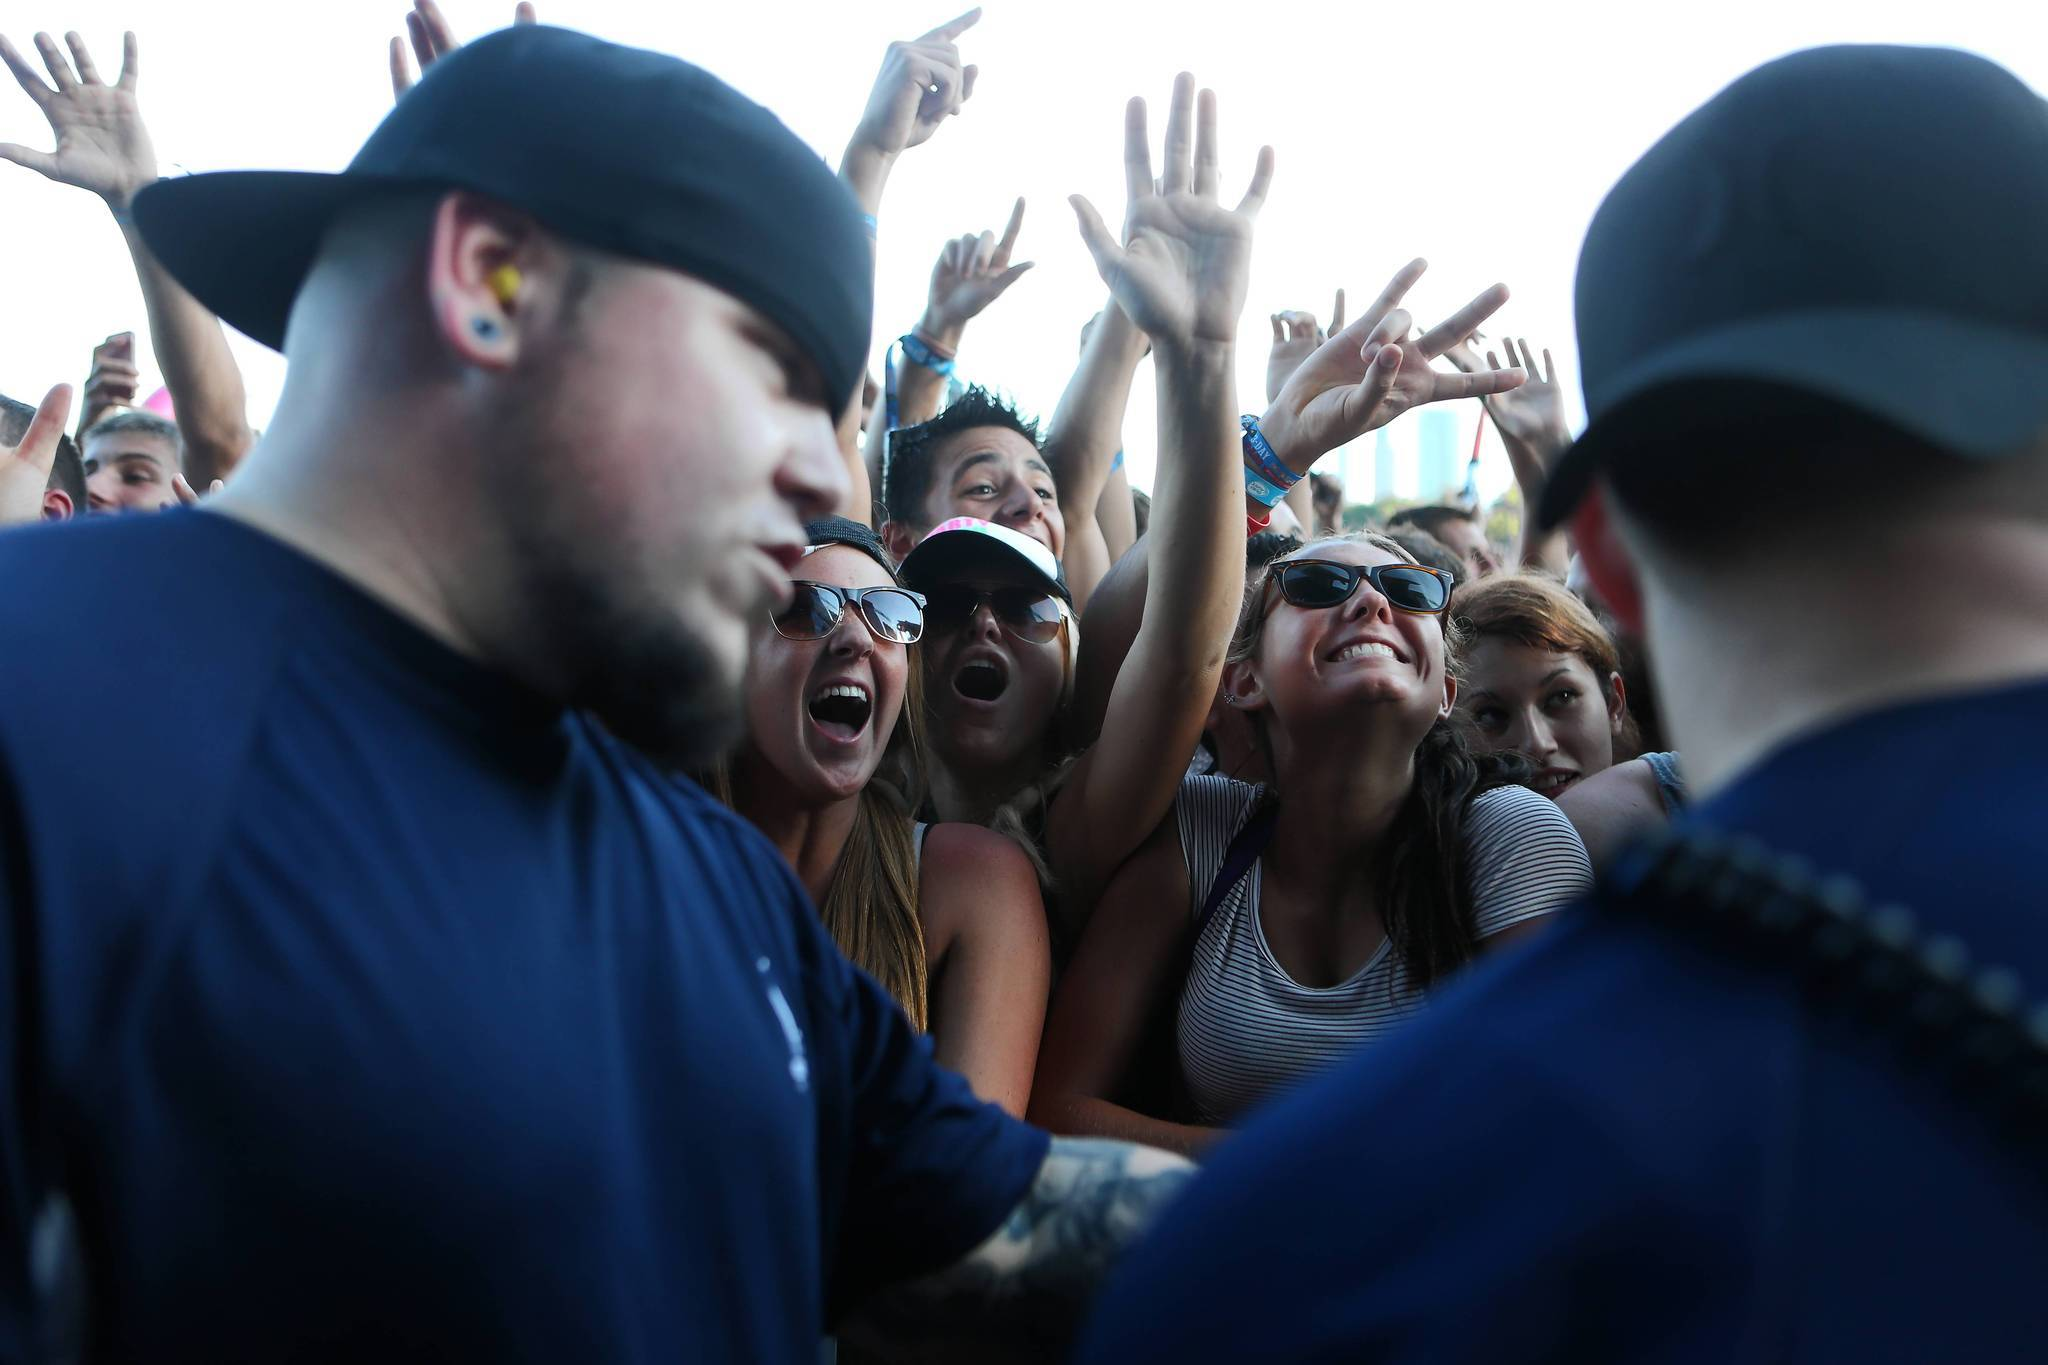 Photos: 2013 Lollapalooza Day Two - Kendrick Lamar fans